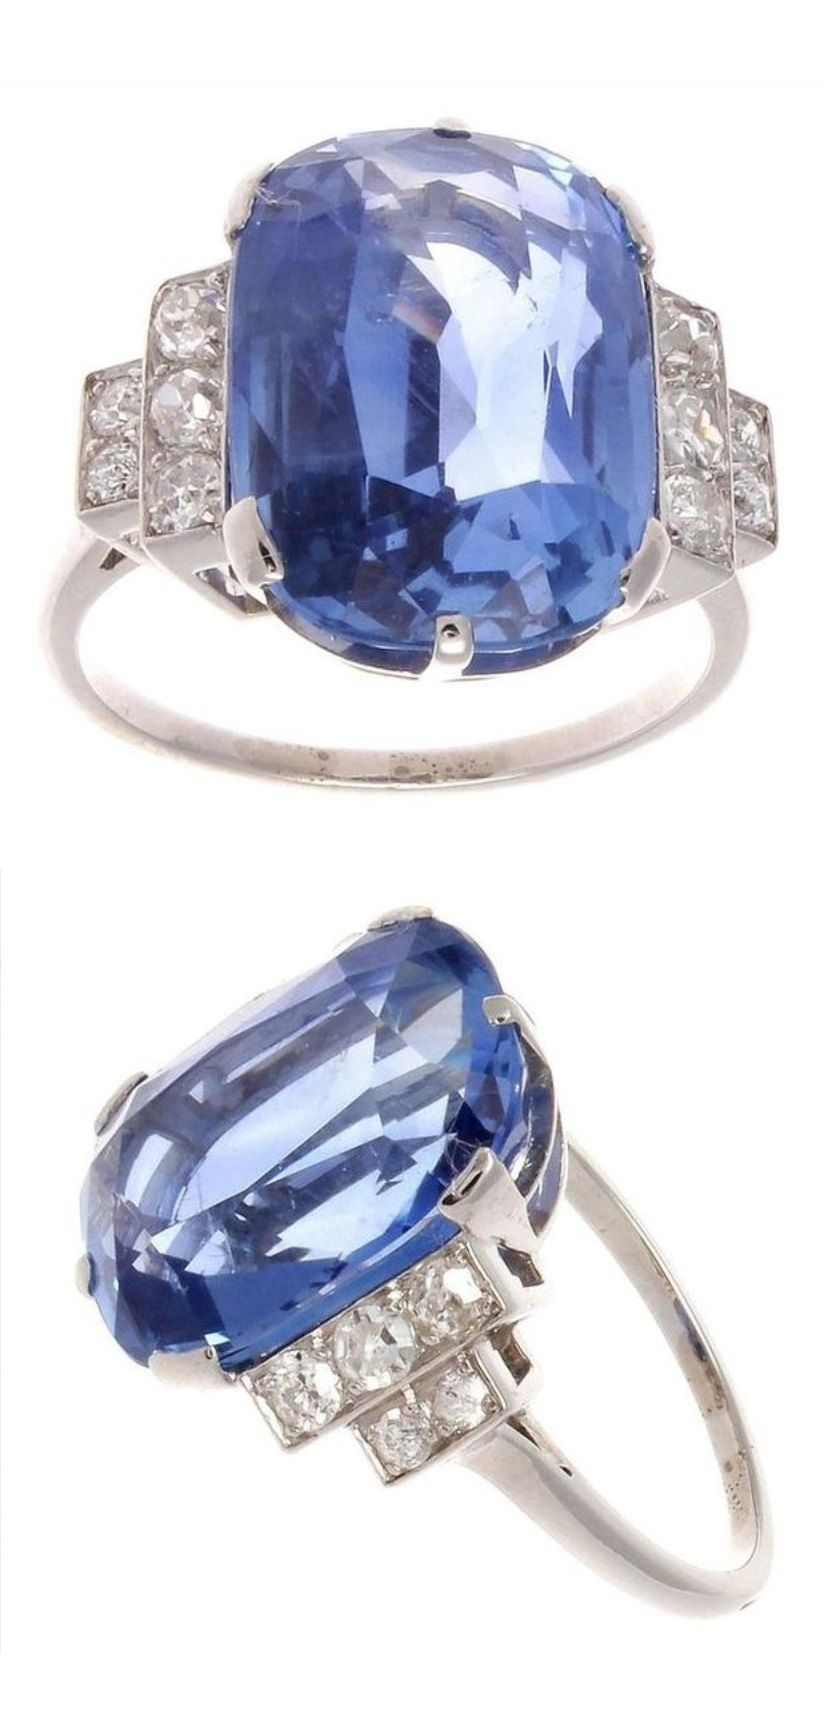 An Art Deco Platinum Sapphire And Diamond Ring 1930s Featuring A Natural Ceylon Sapphire Weighing 12 Carats Artd Beautiful Jewelry Vintage Jewelry Jewelry